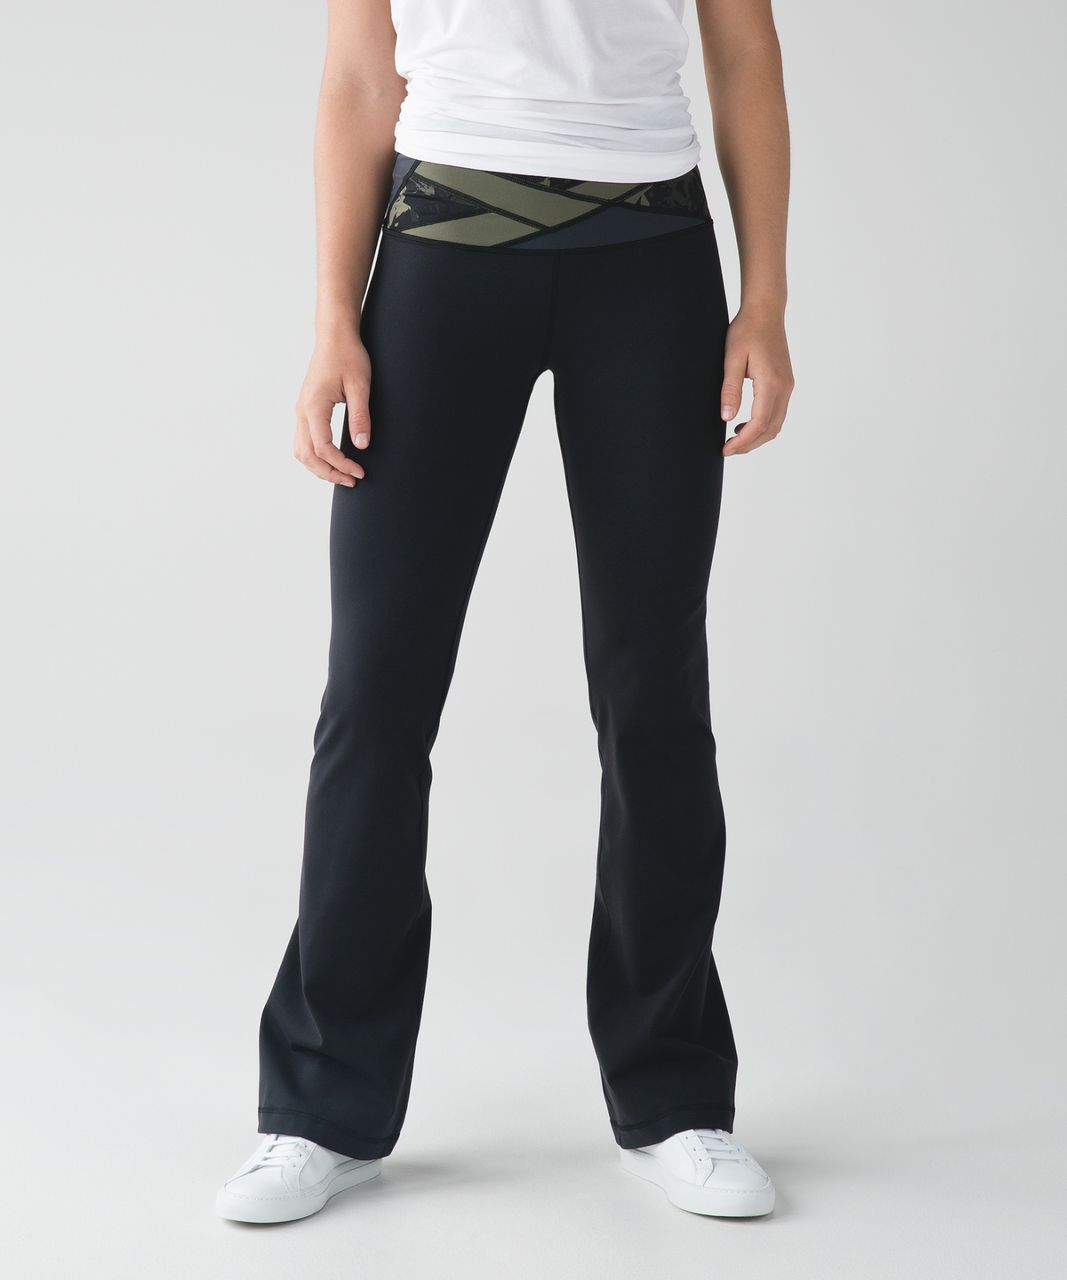 Lululemon Groove Pant III (Regular) - Black / Deep Coal / Pop Cut Fatigue Green Black